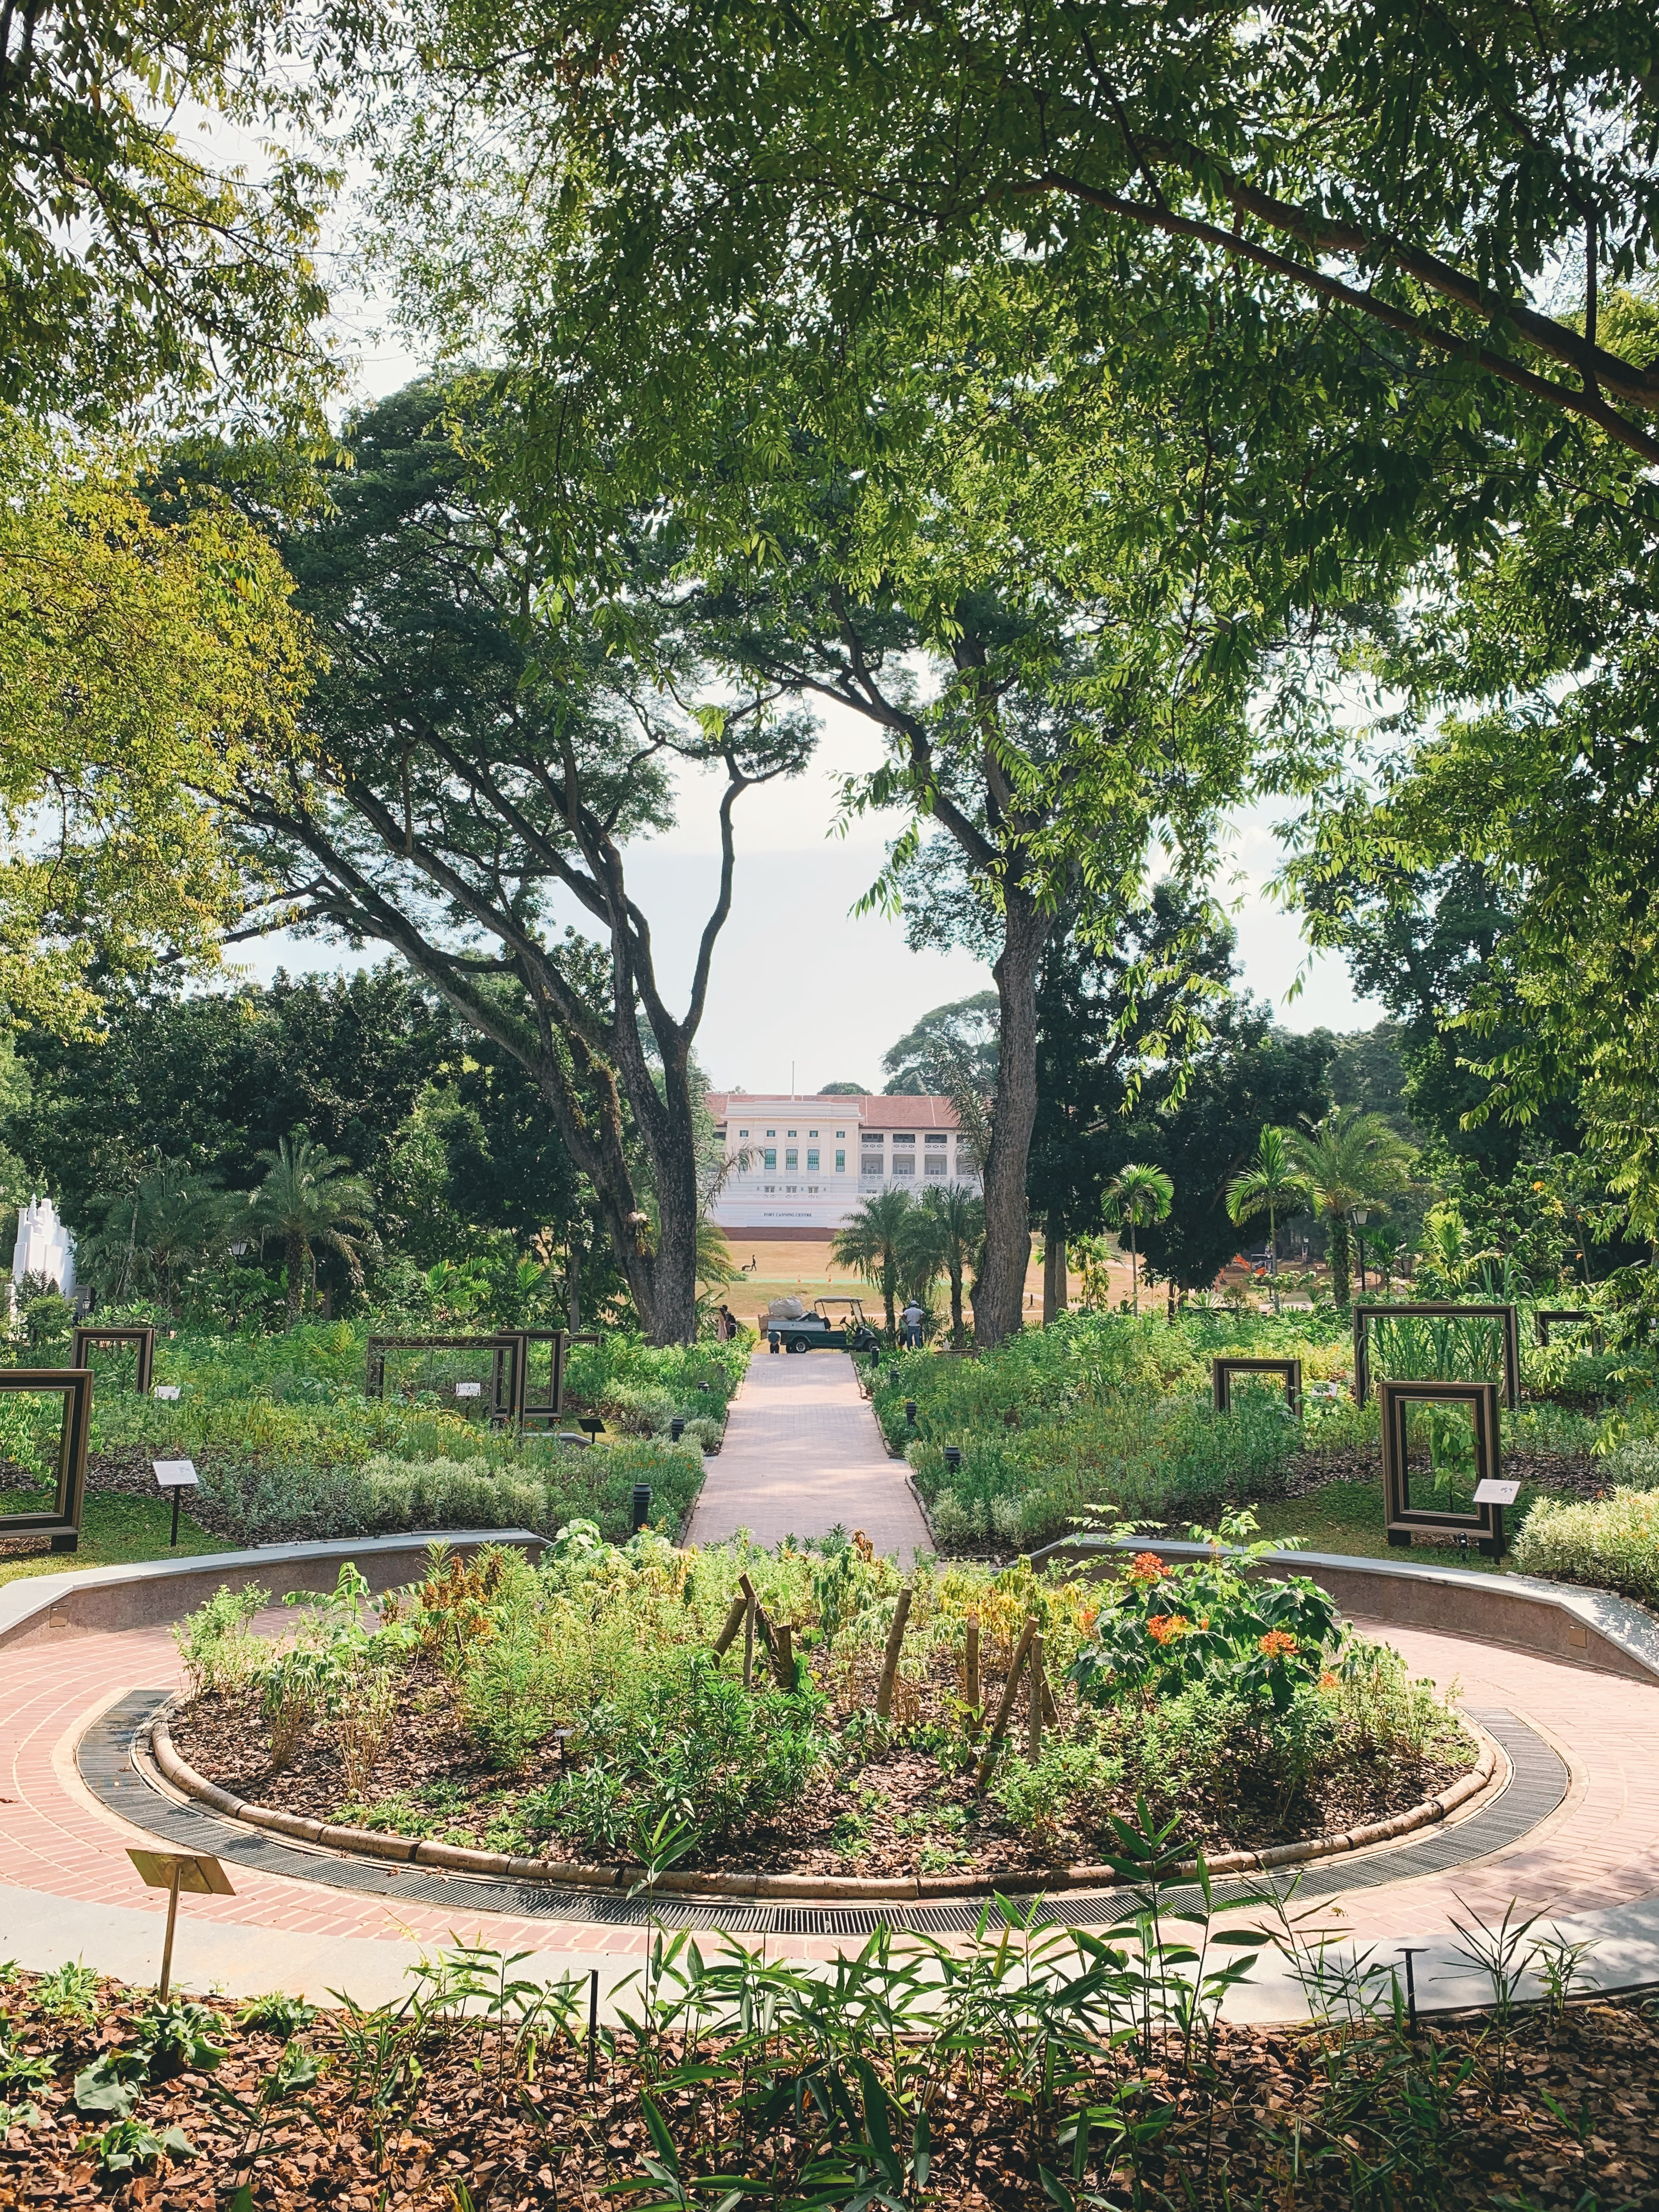 'From Singapore to Singaporean: The Bicentennial Experience', set in the lush greenery of Fort Canning Park, will run till end of 2019. Photo: Connected to India